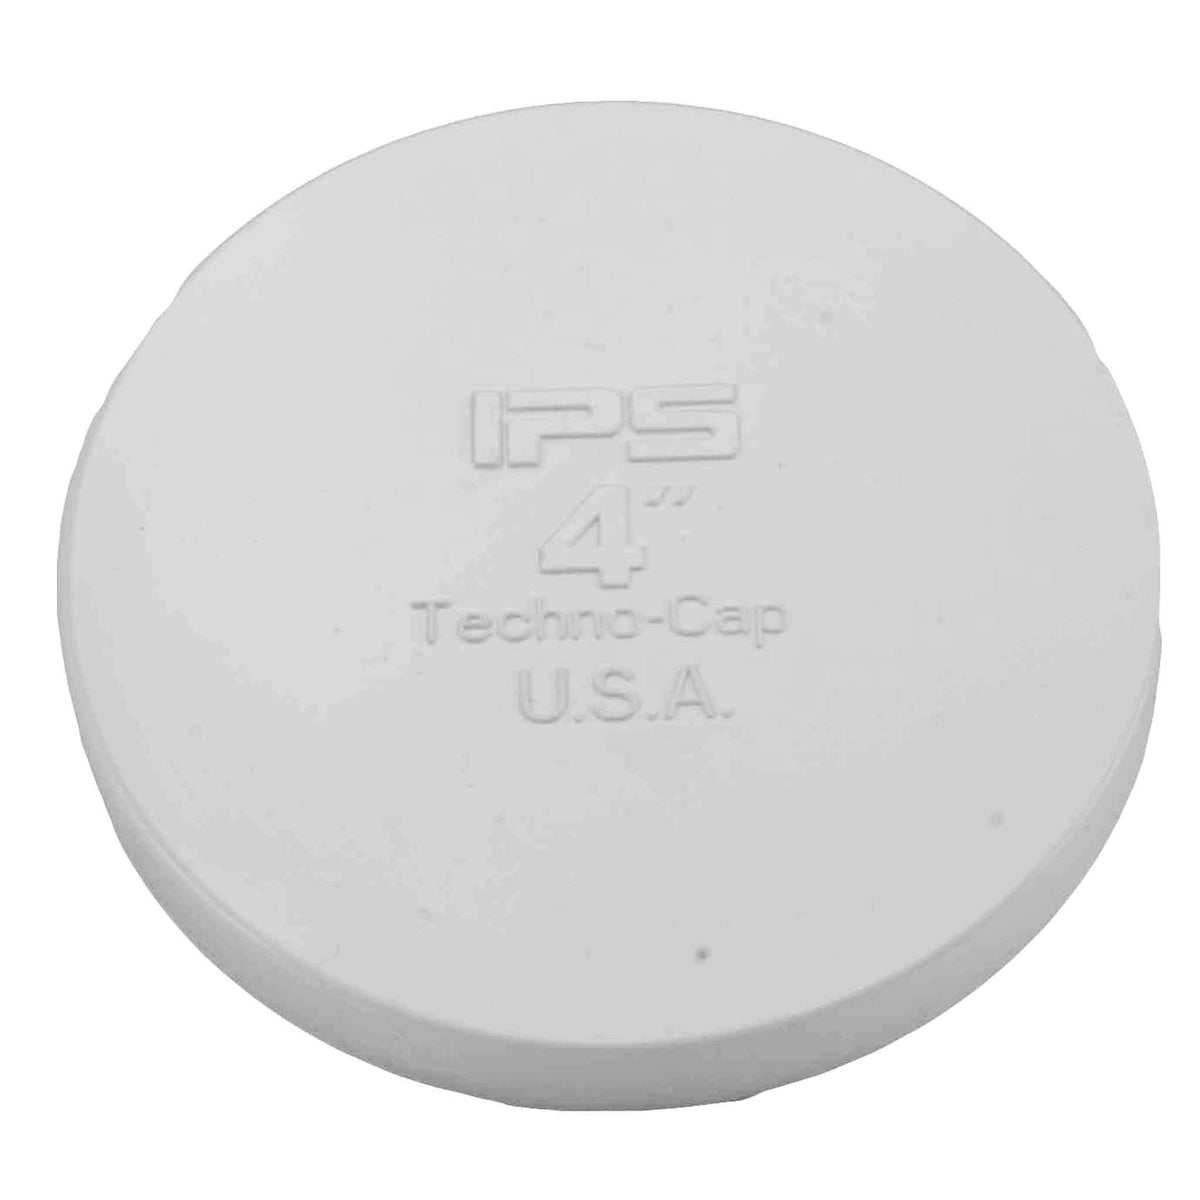 "4"" IPS Techno Caps"